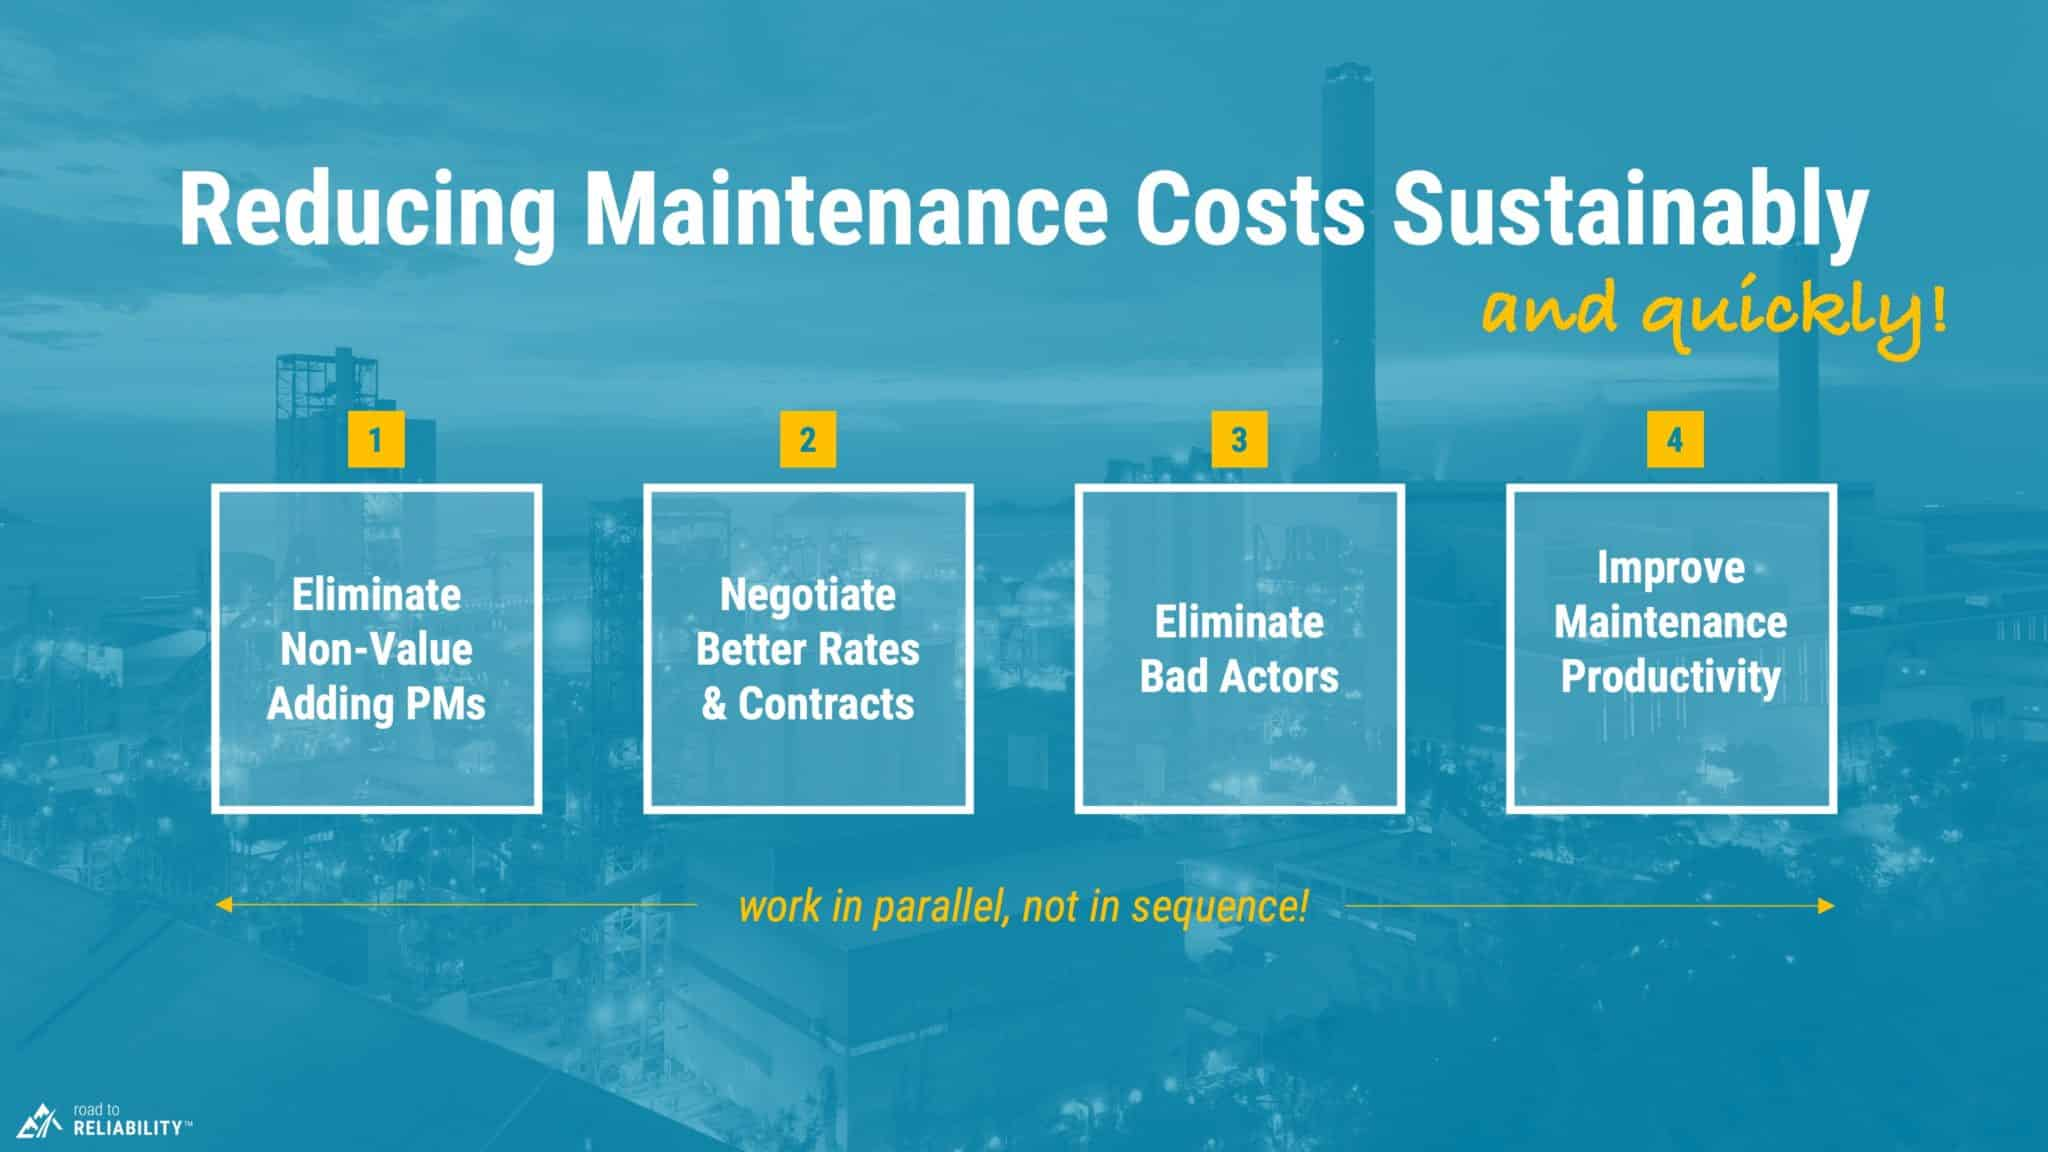 4 steps for reducing maintenance costs quickly